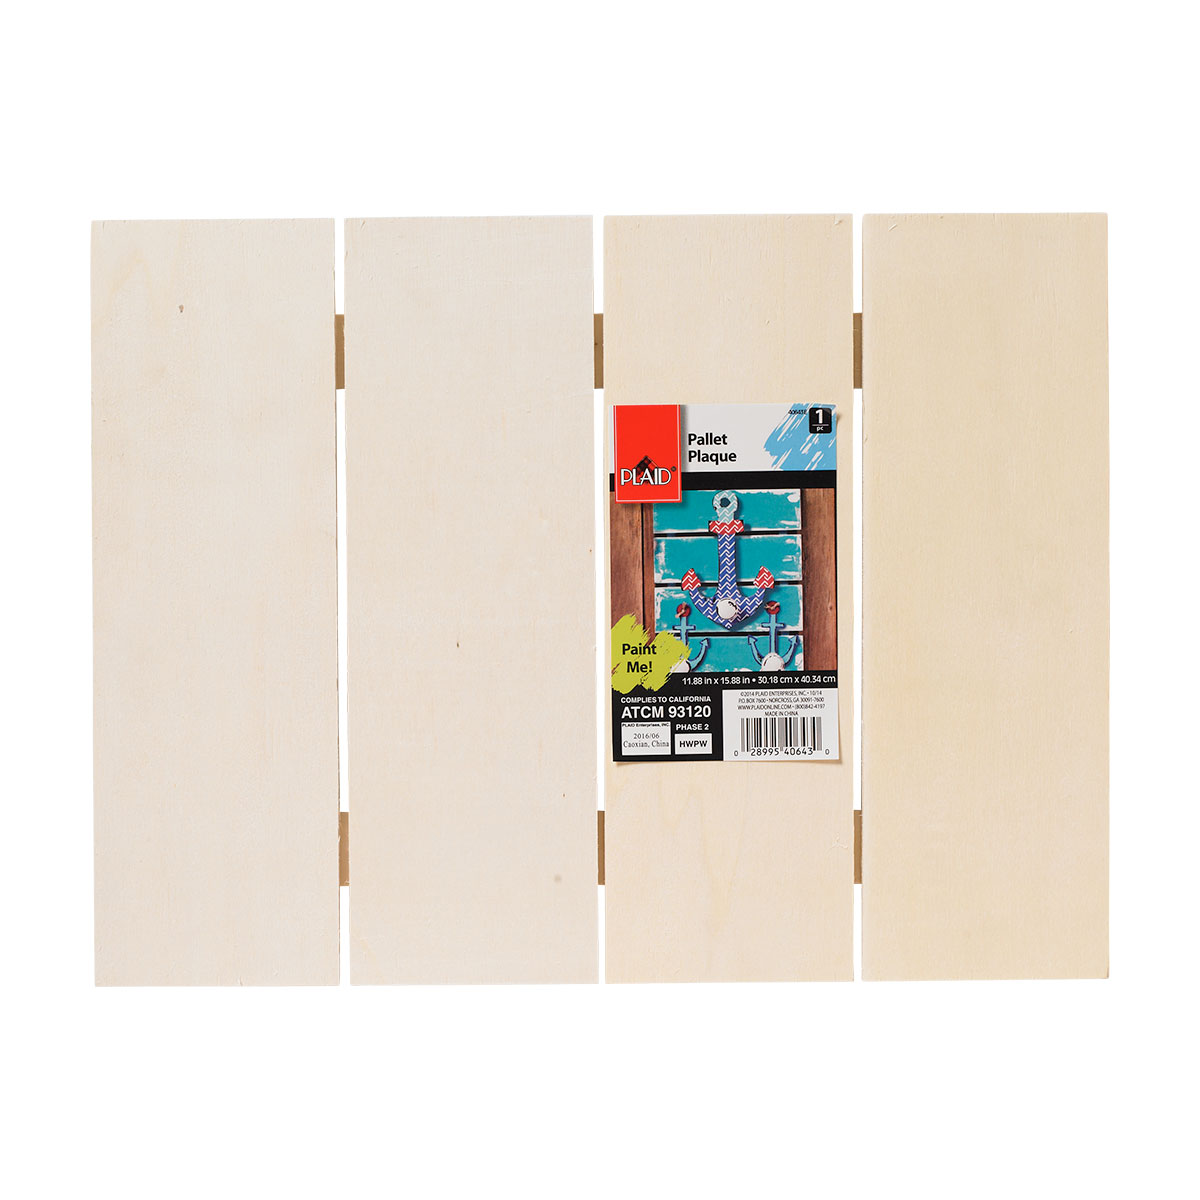 Plaid ® Wood Surfaces - Pallet Plaque, 15-3/4